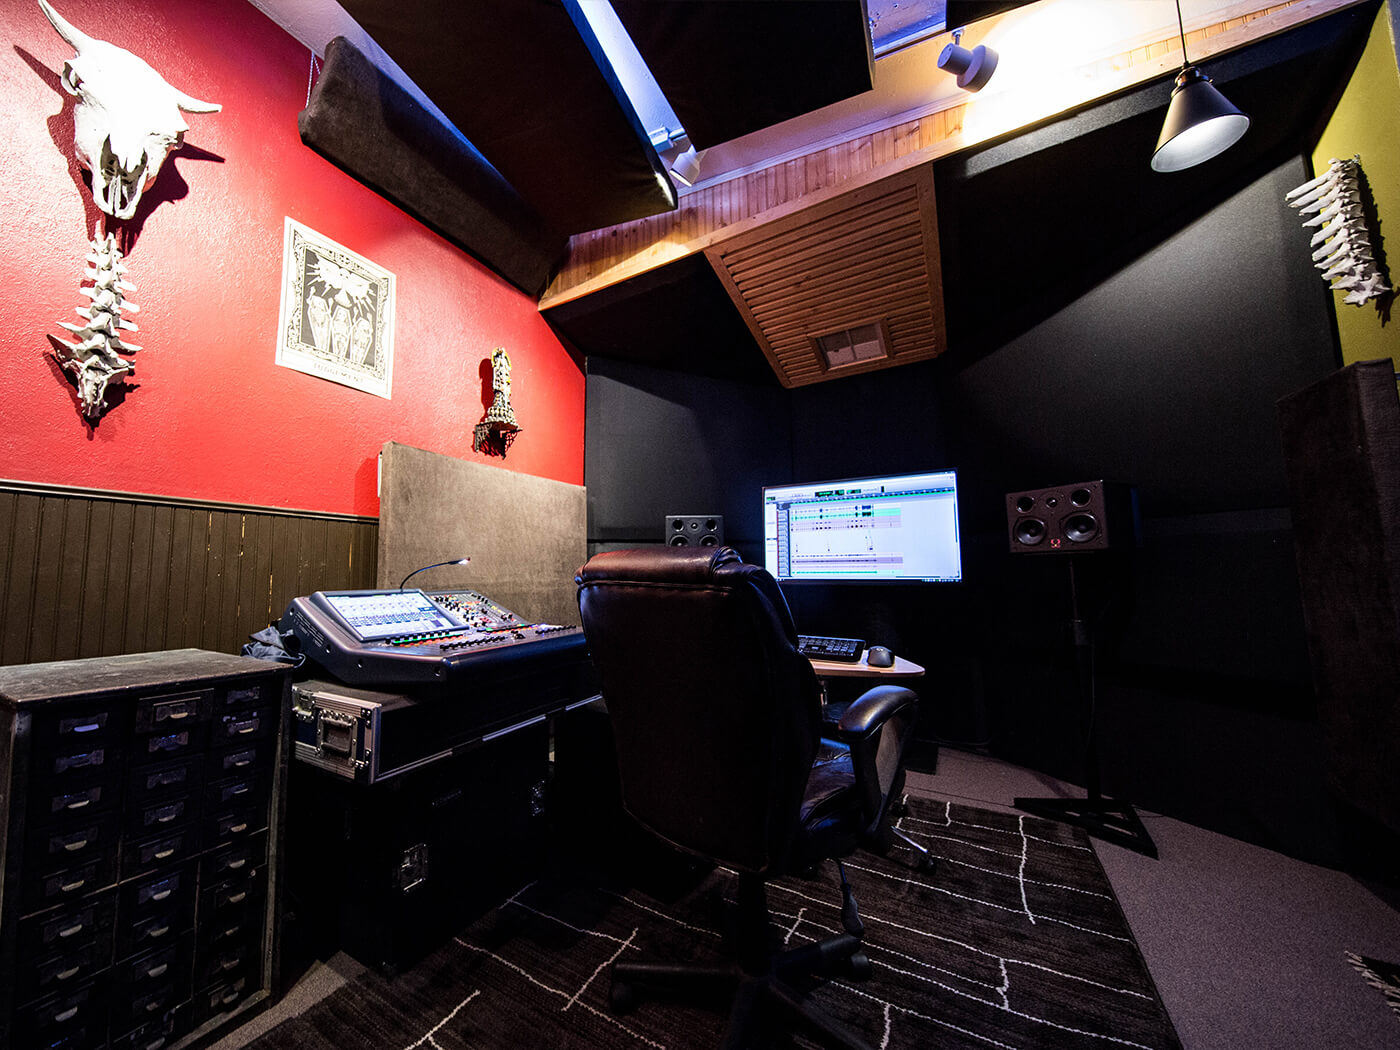 The control room at Juggernaut Audio